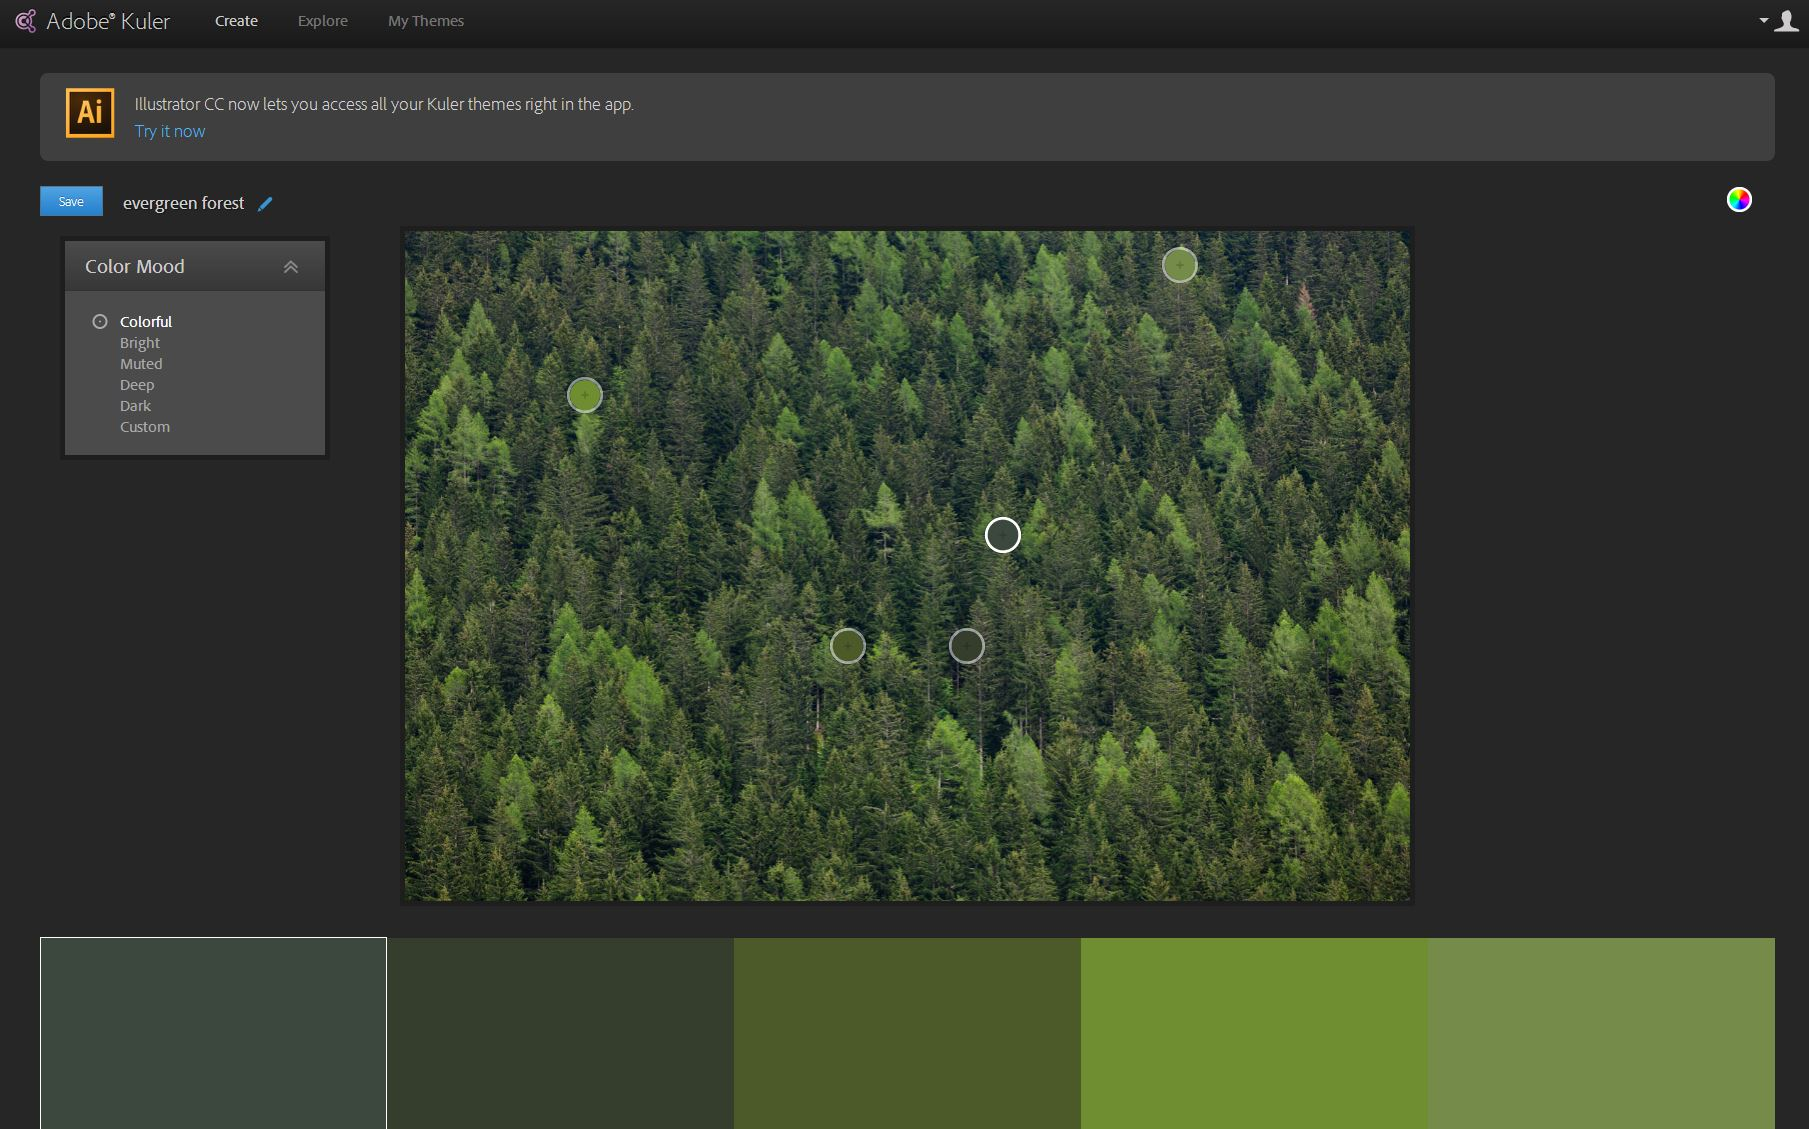 Adobe's Kuler tool can pick colors that come are likely to be found together in nature.